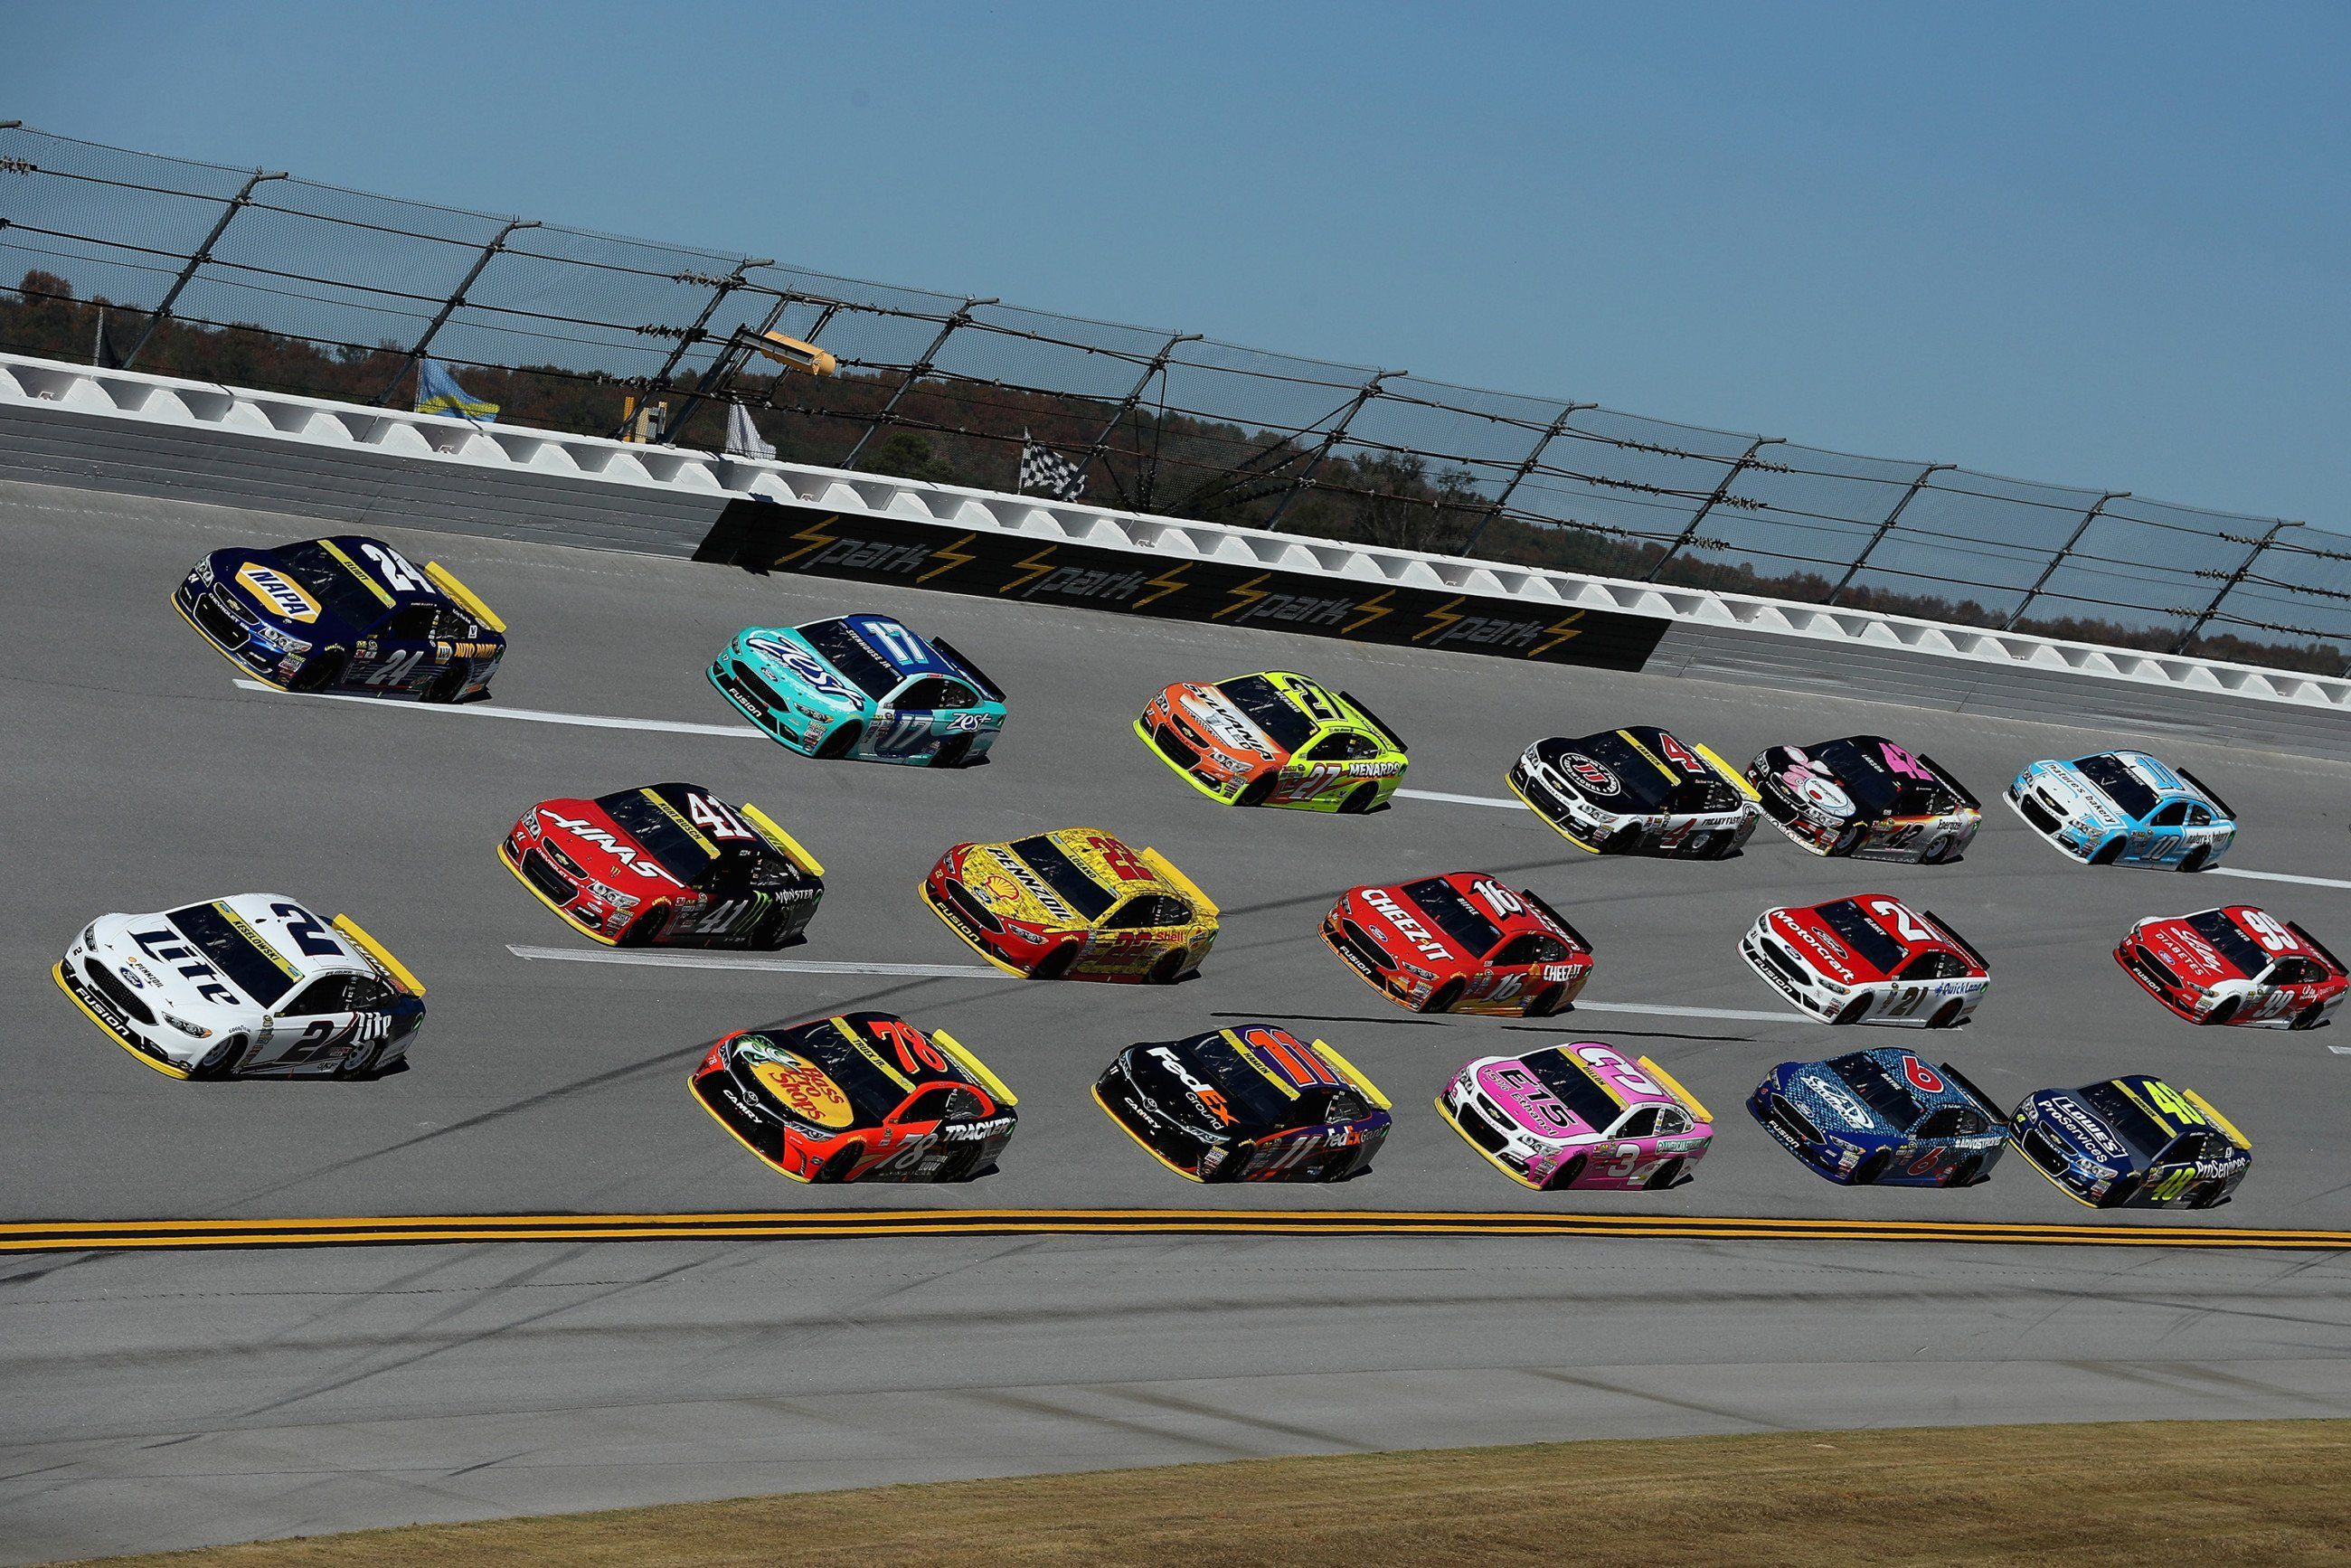 Charlotte Motor Speedway: Restrictor plate | Charlotte, NASCAR and Cars